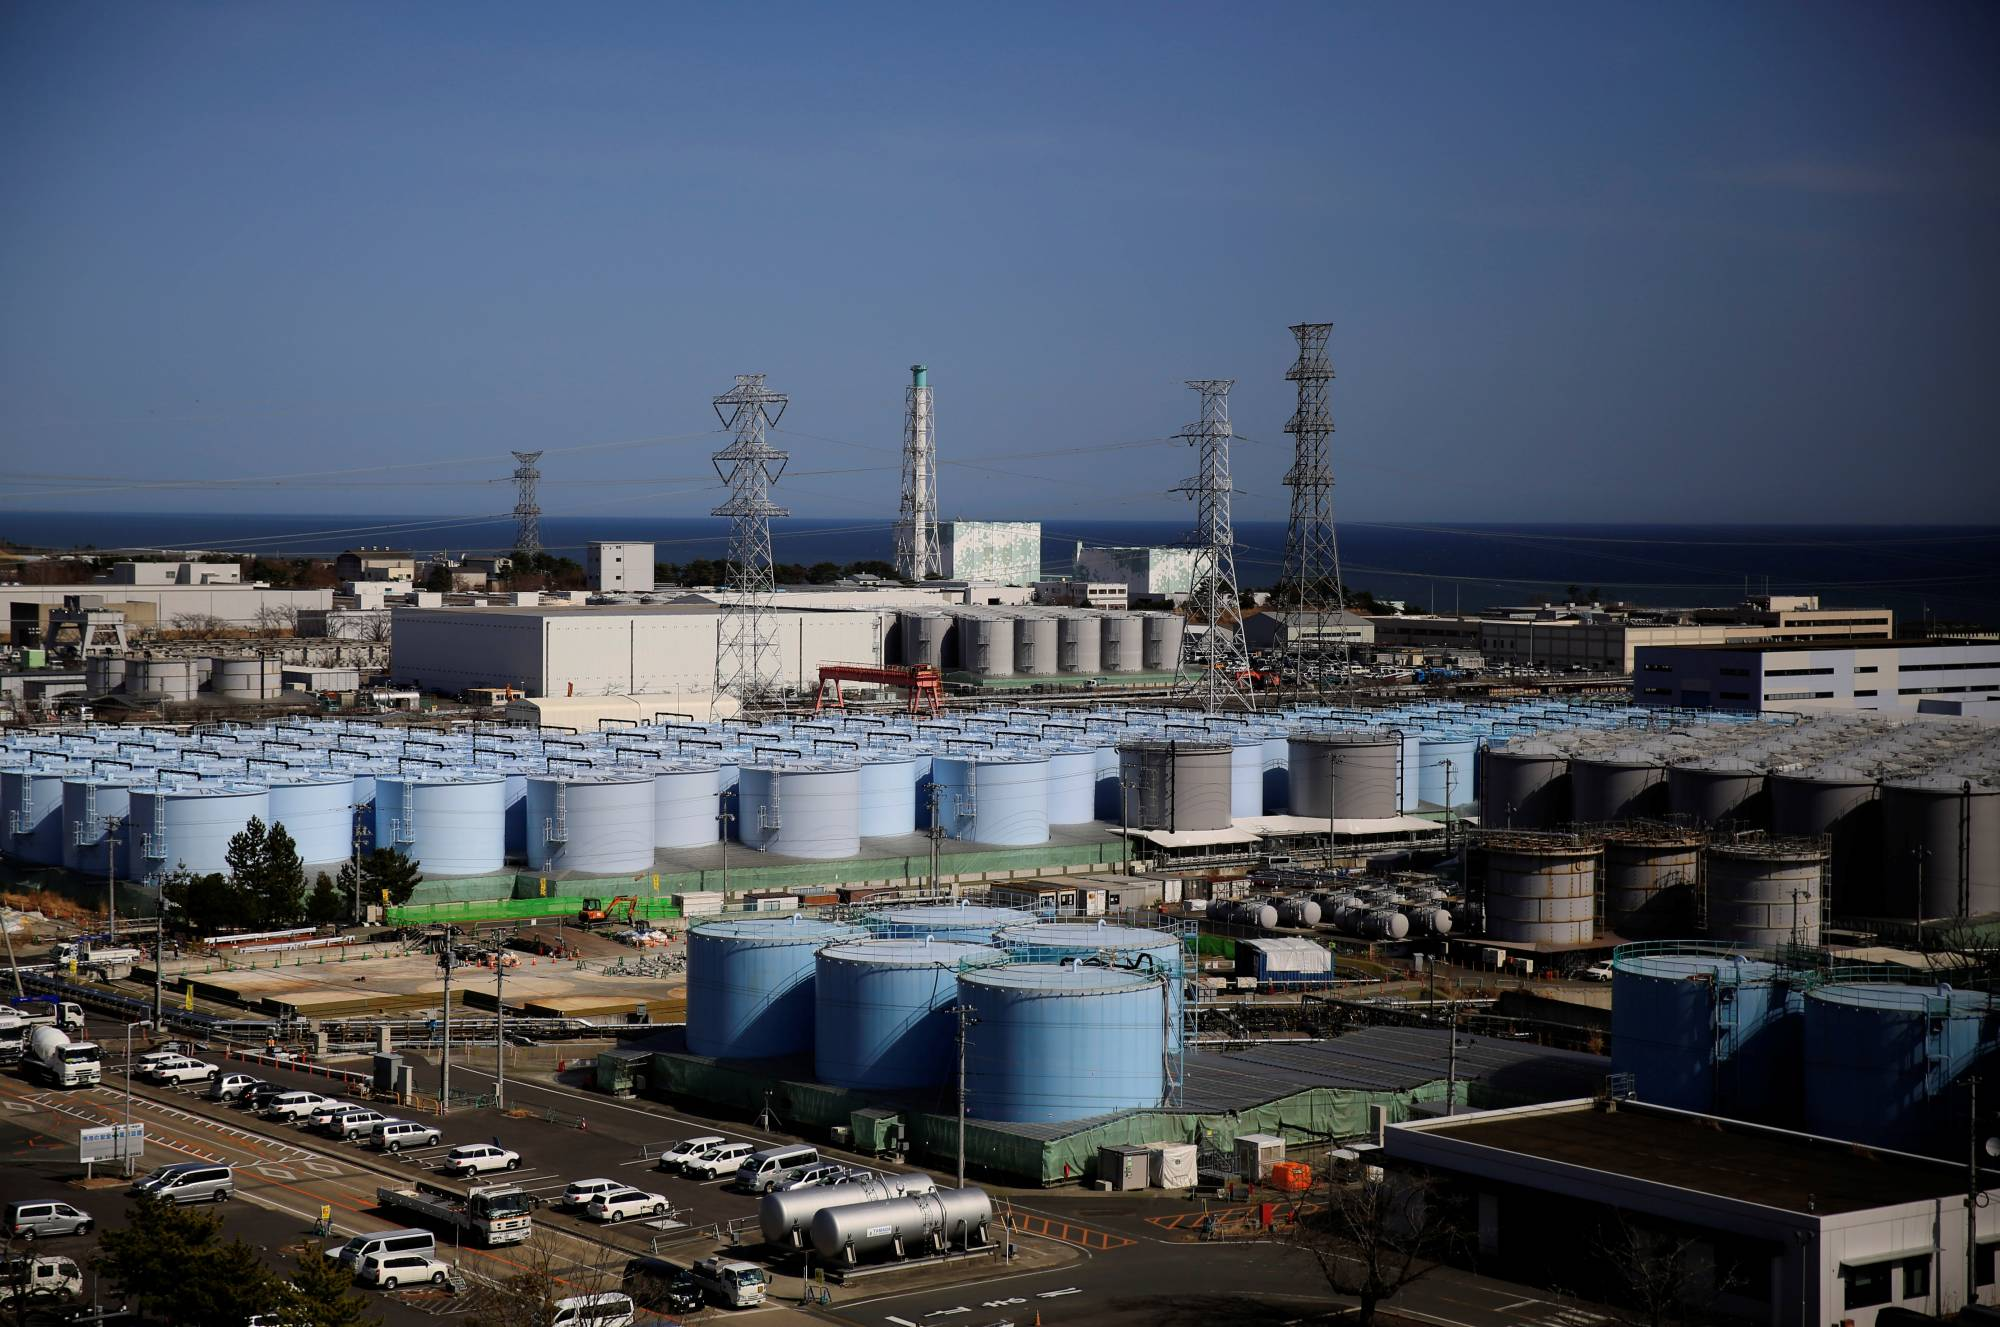 Storage tanks for treated water at the Fukushima No. 1 nuclear power plant in Okuma town, Fukushima prefecture, on March 1 | REUTERS